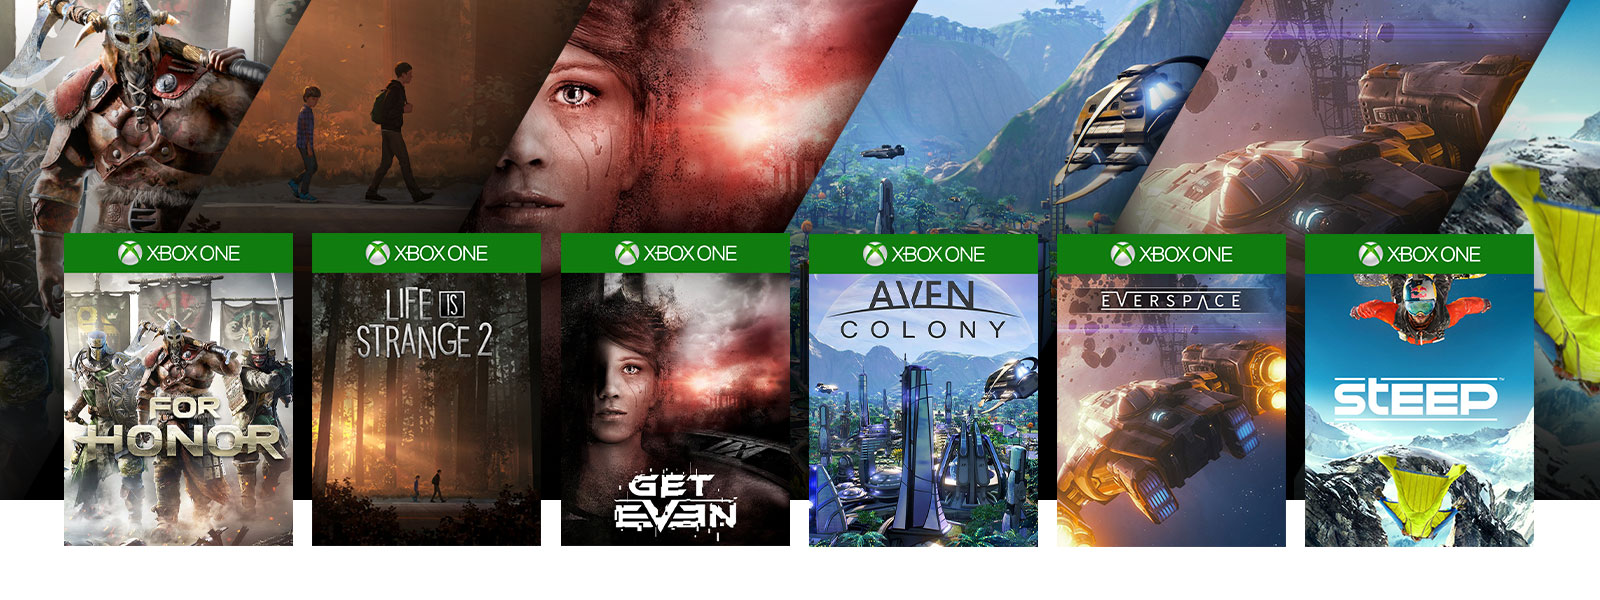 A collage of box art, scenes, and characters from Xbox One games on sale. For Honor, Life is Strange 2, Get Even, Aven Colony, Everspace, Steep